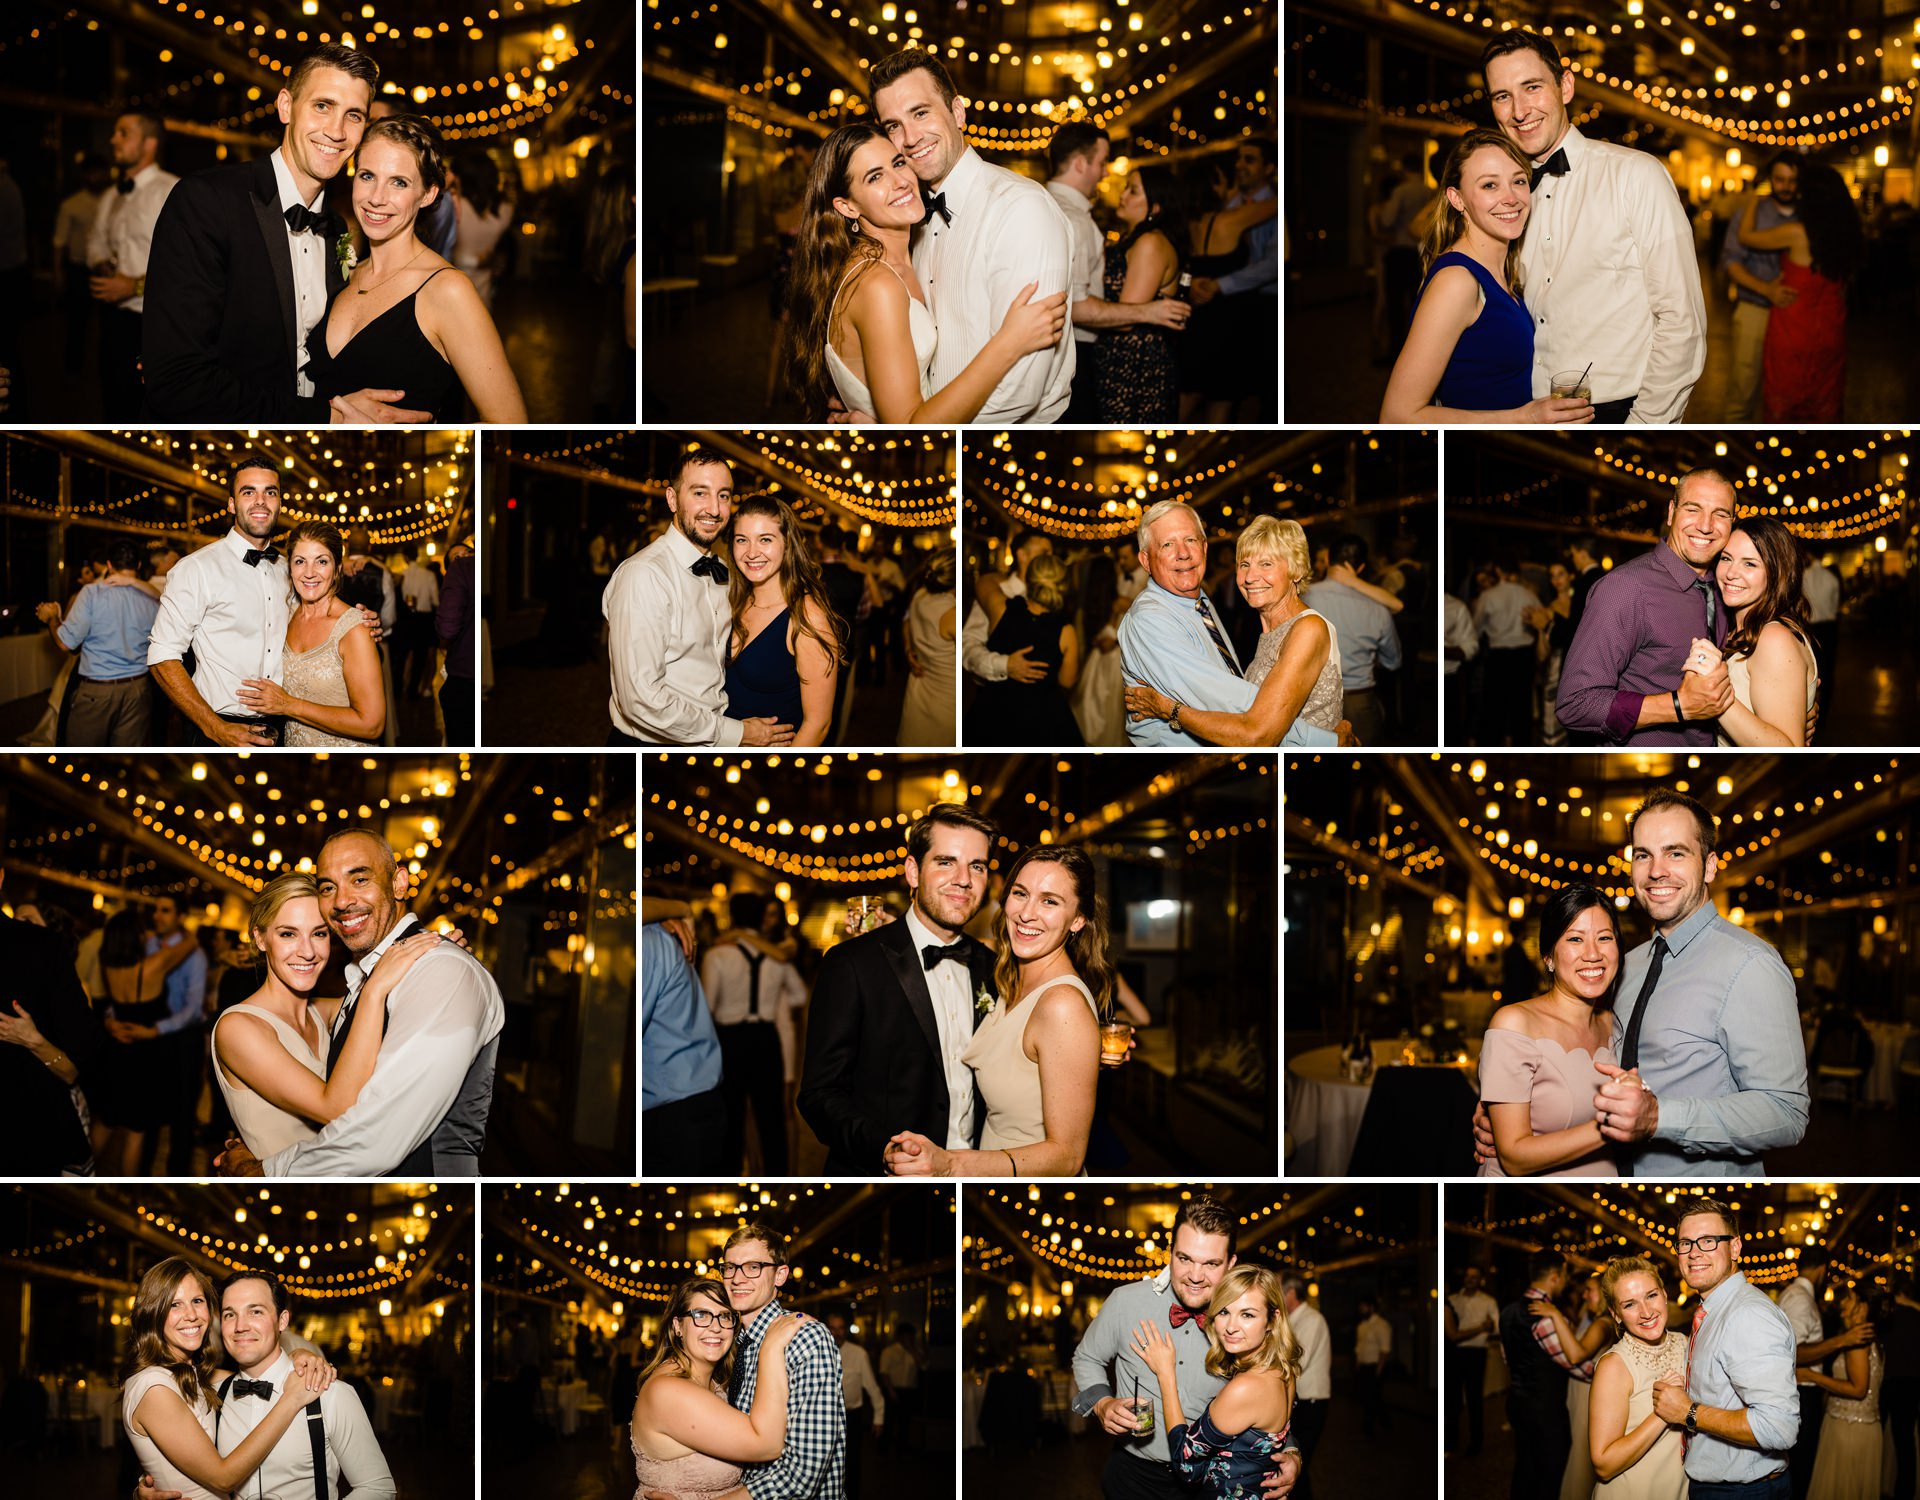 Cleveland Histroy Center Wedding Photographer at WRHS 73.jpg